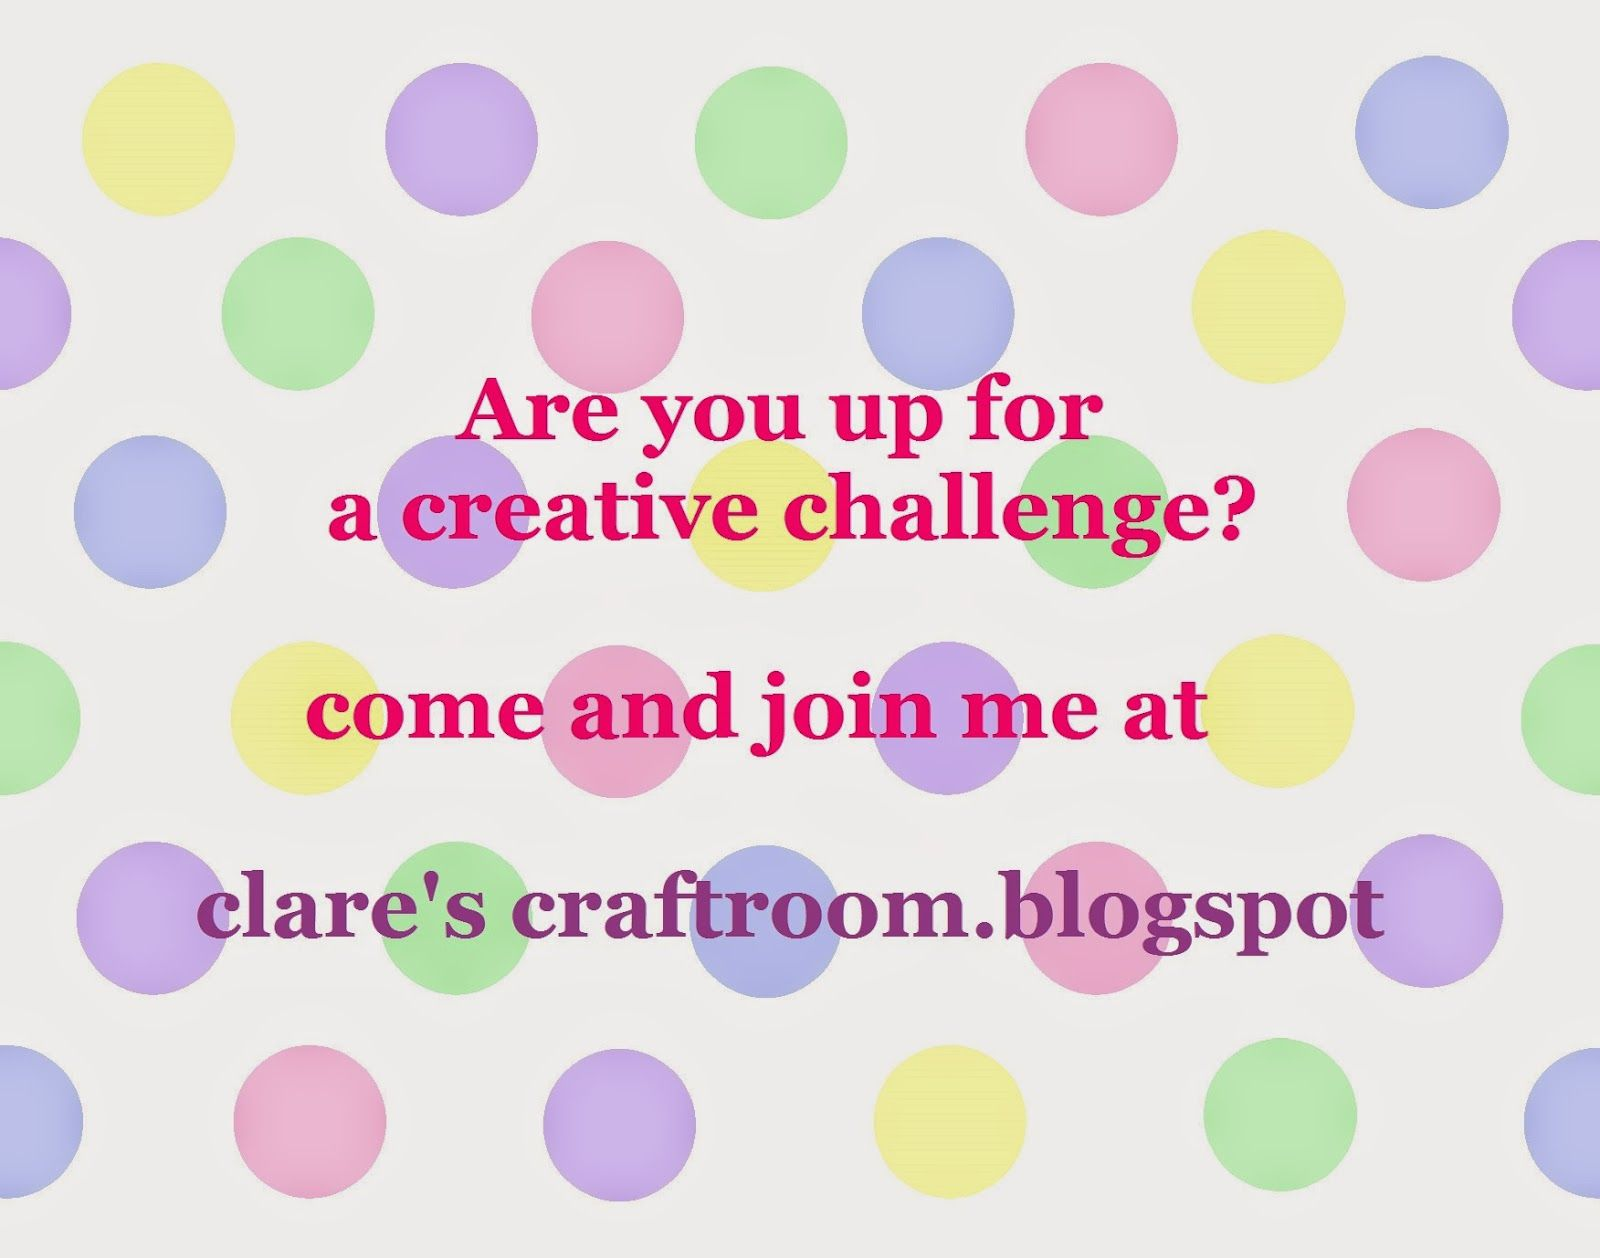 clare's craftroom  fun and easy creative challenge!